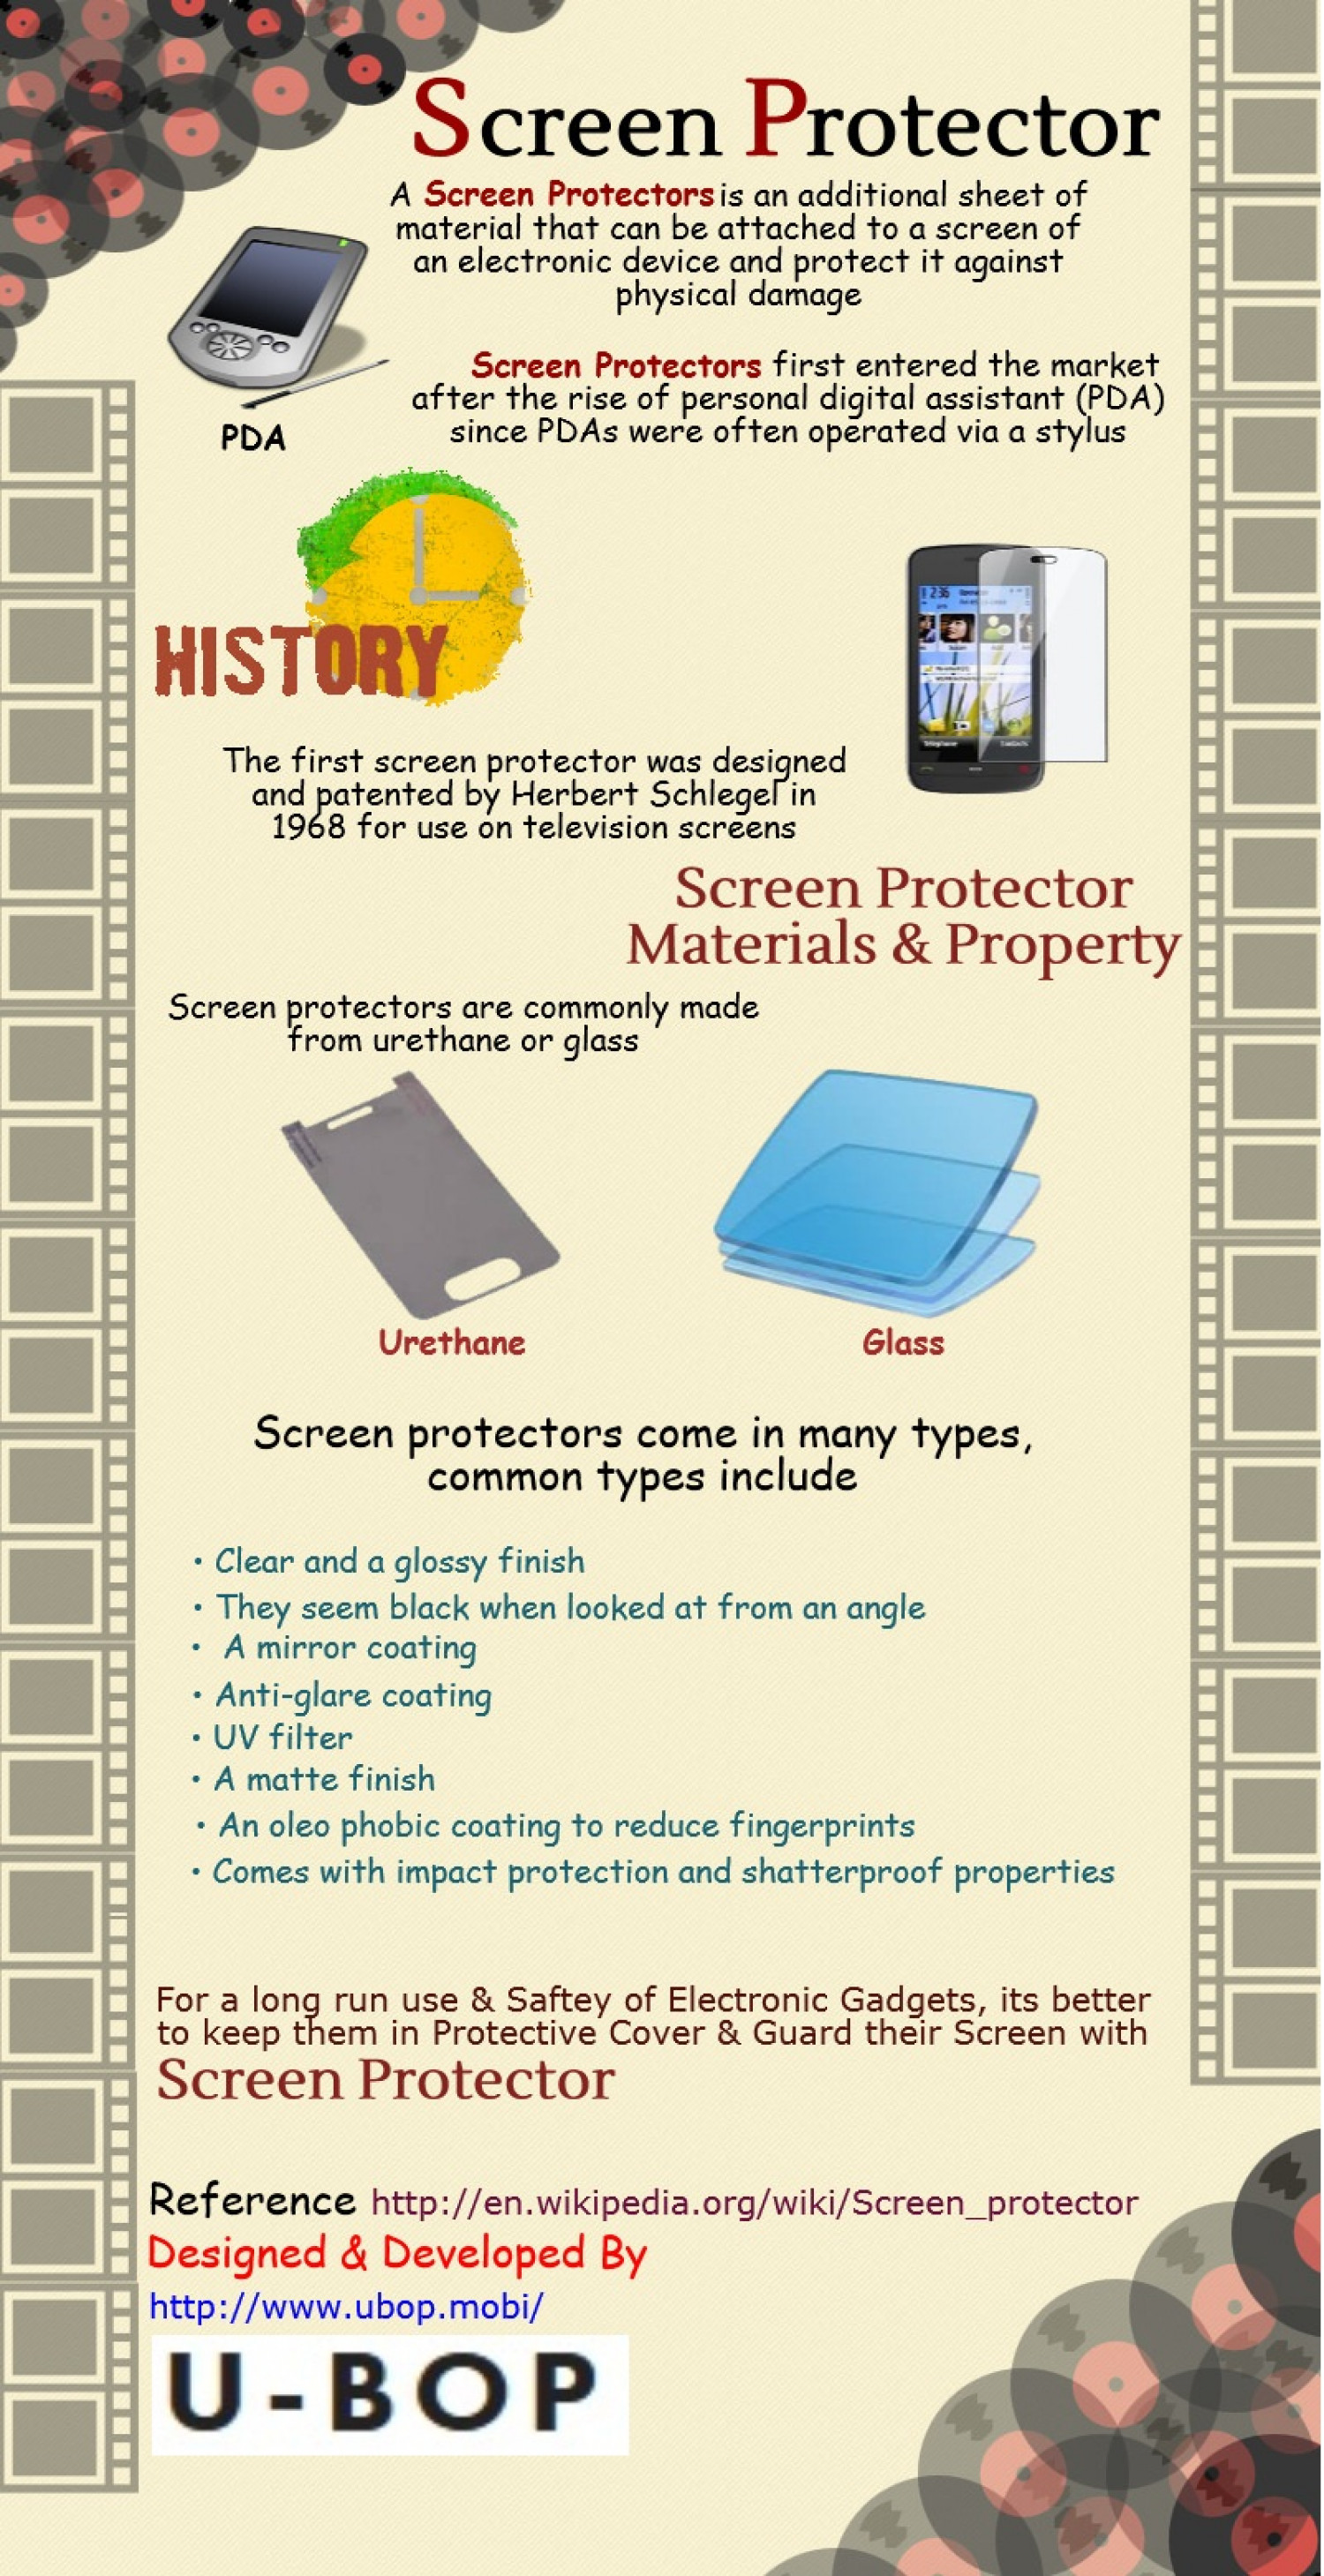 Screen Protector Infographic